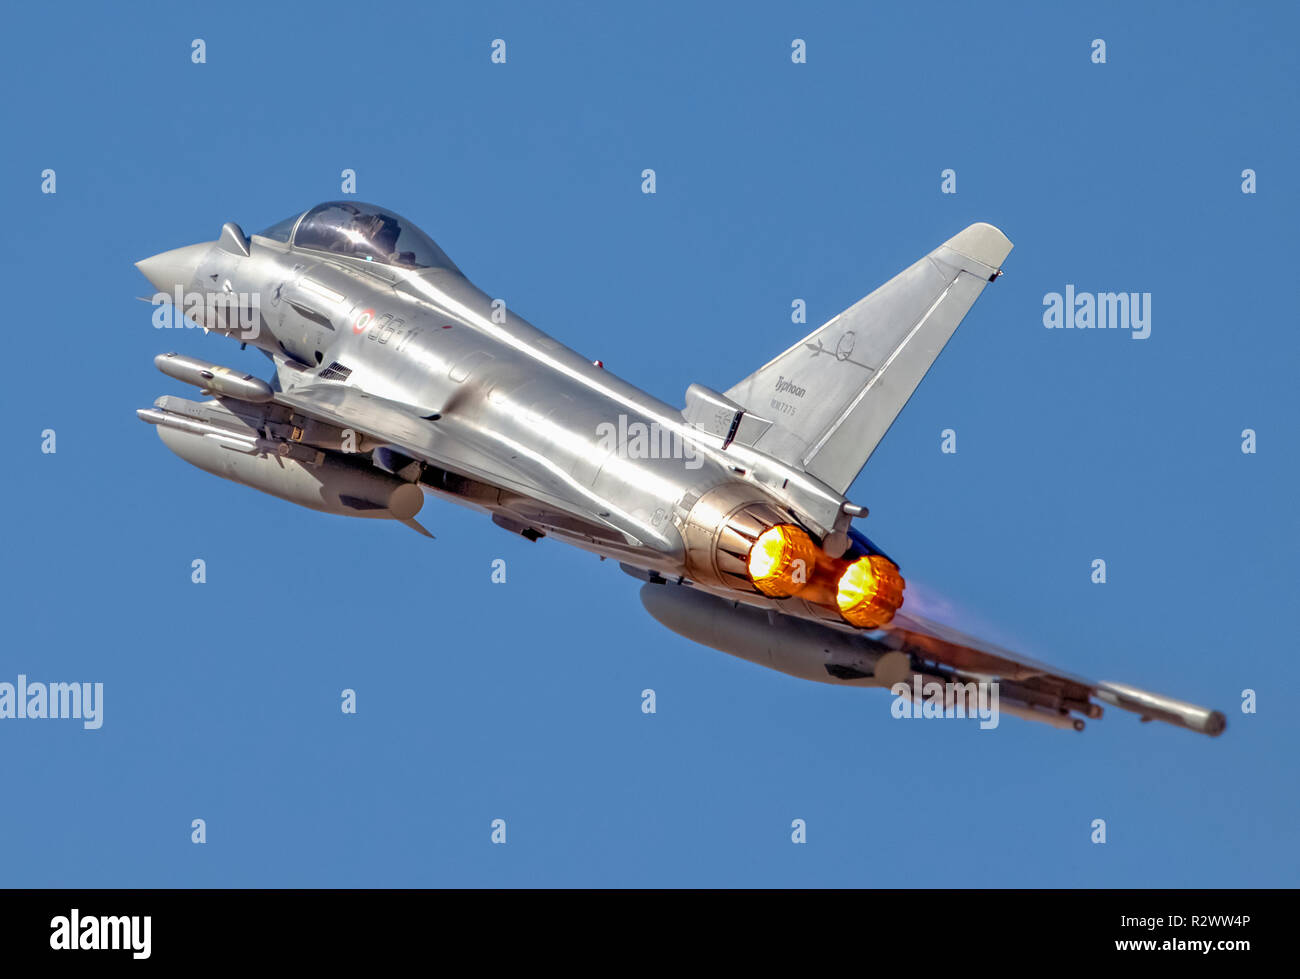 Italian Air force Eurofighter Typhoon in flight. A twin-engine, canard-delta wing, multirole fighter. Stock Photo